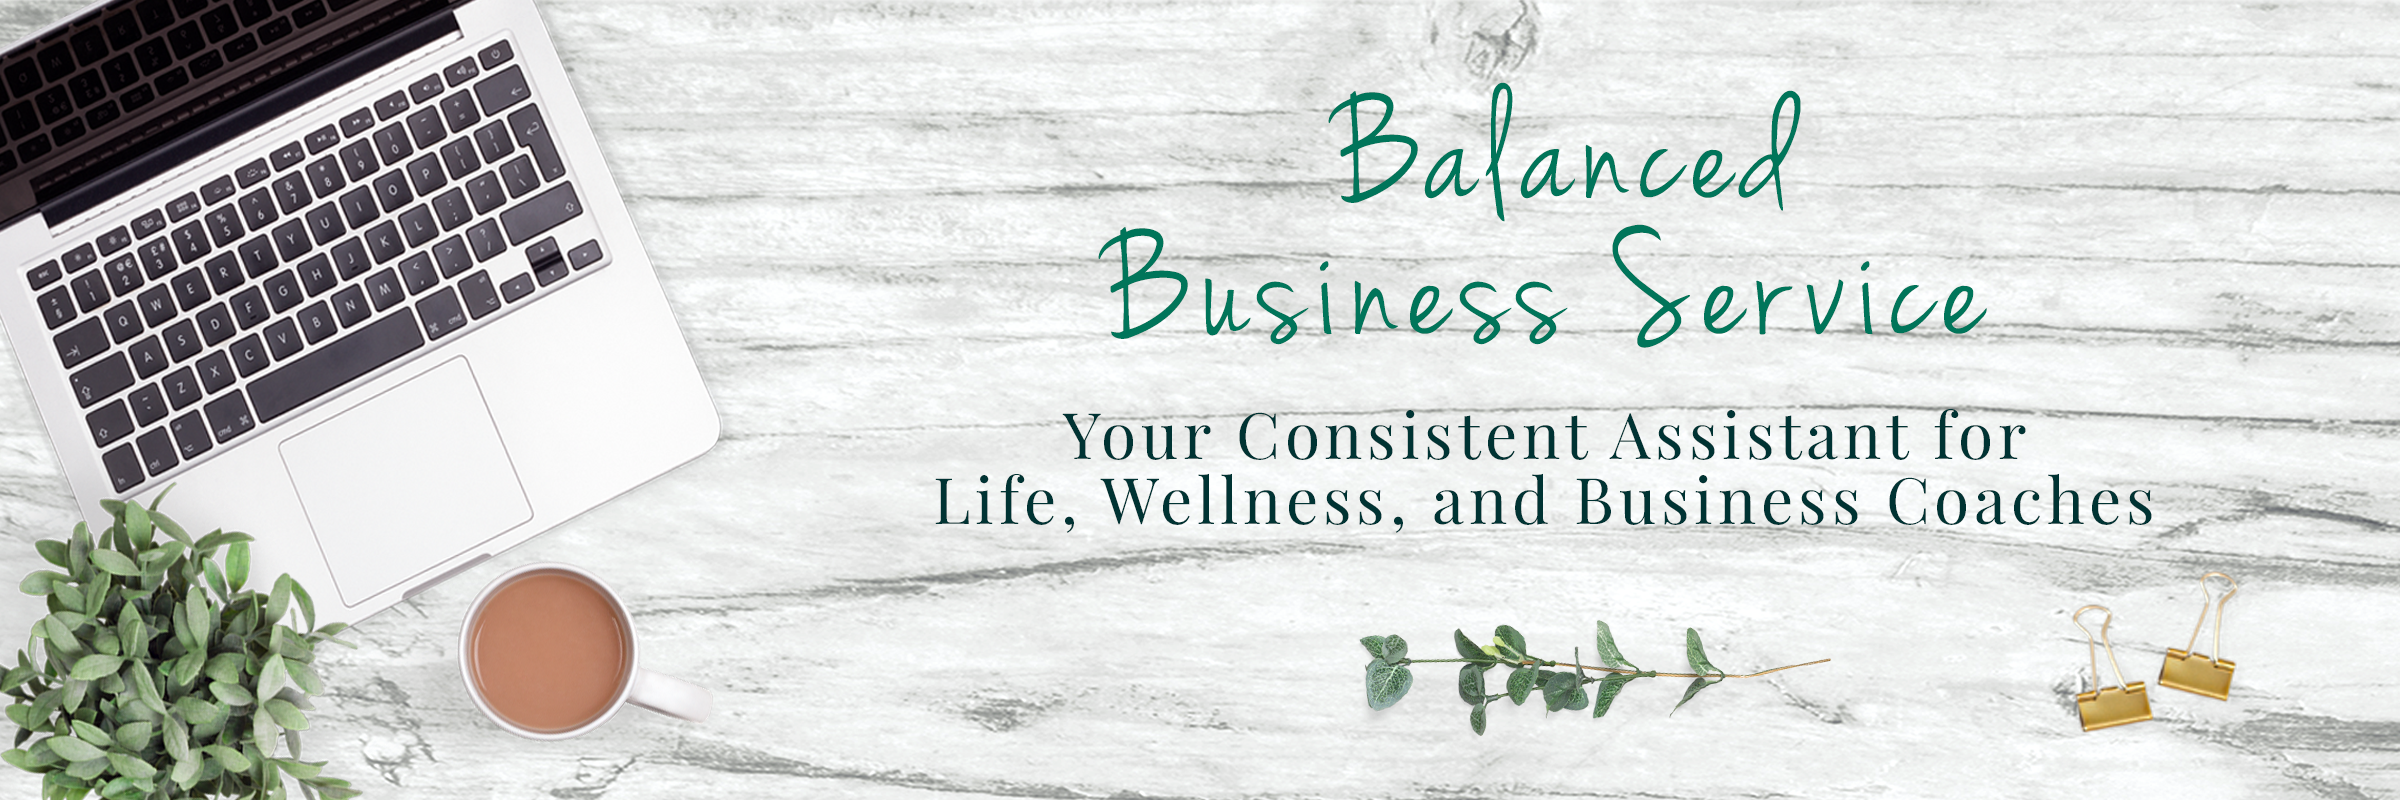 Home Page – First Slider 2400 x 800 Life Wellness and Business Coaches